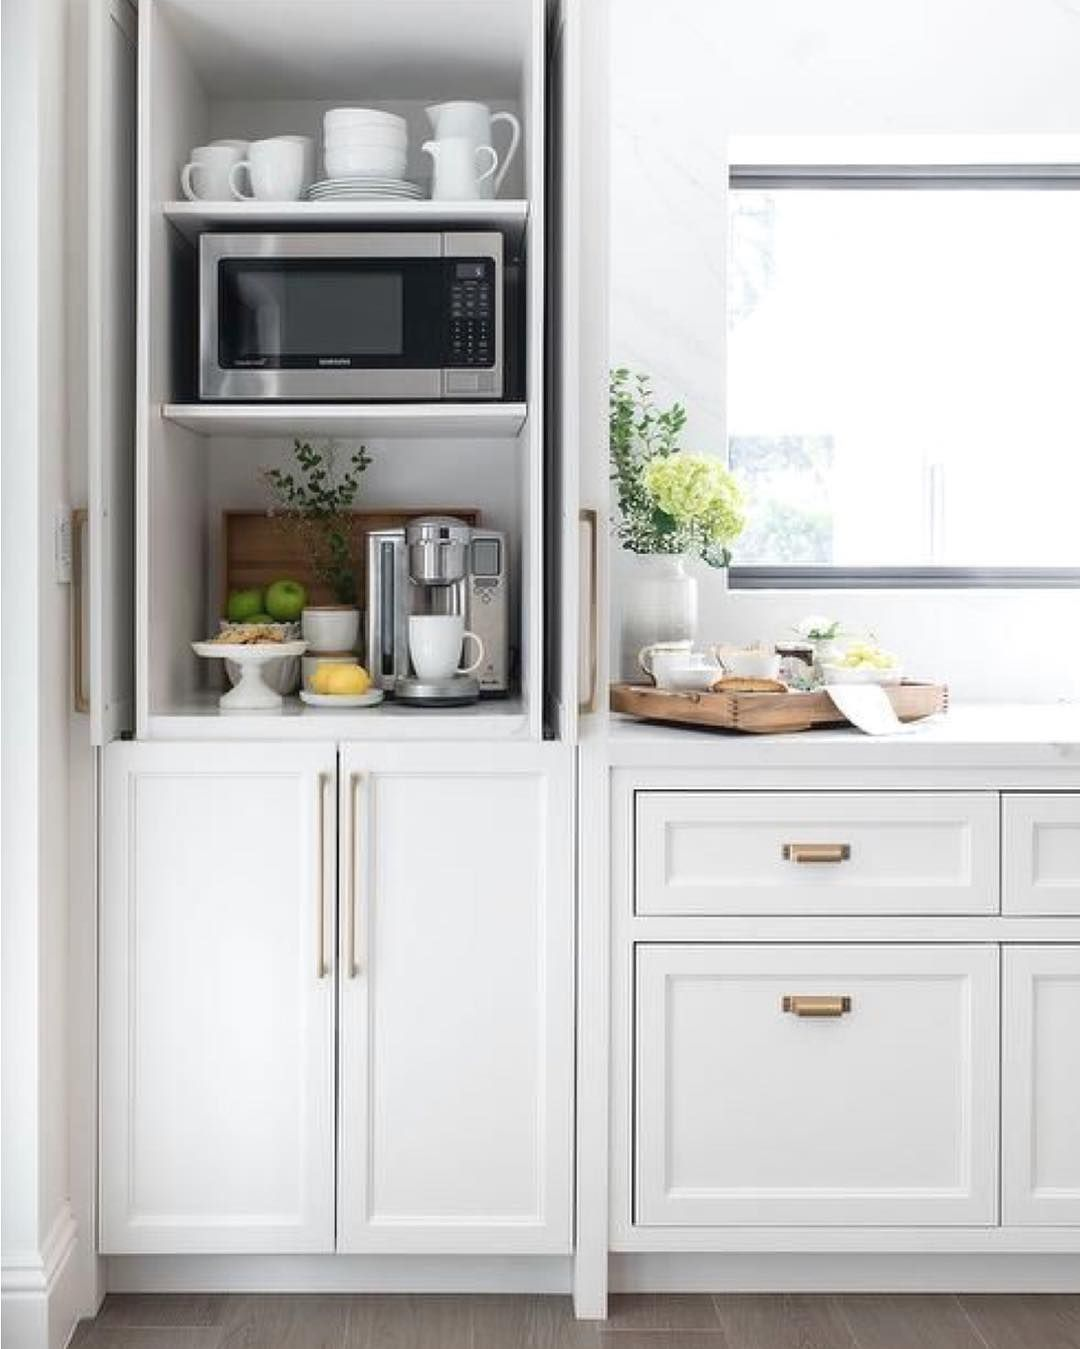 New The 10 Best Home Decor With Pictures Hideaway Kitchen Cabinetry For Your Microwave And Coffee S Kitchen Renovation Kitchen Design Home Decor Kitchen